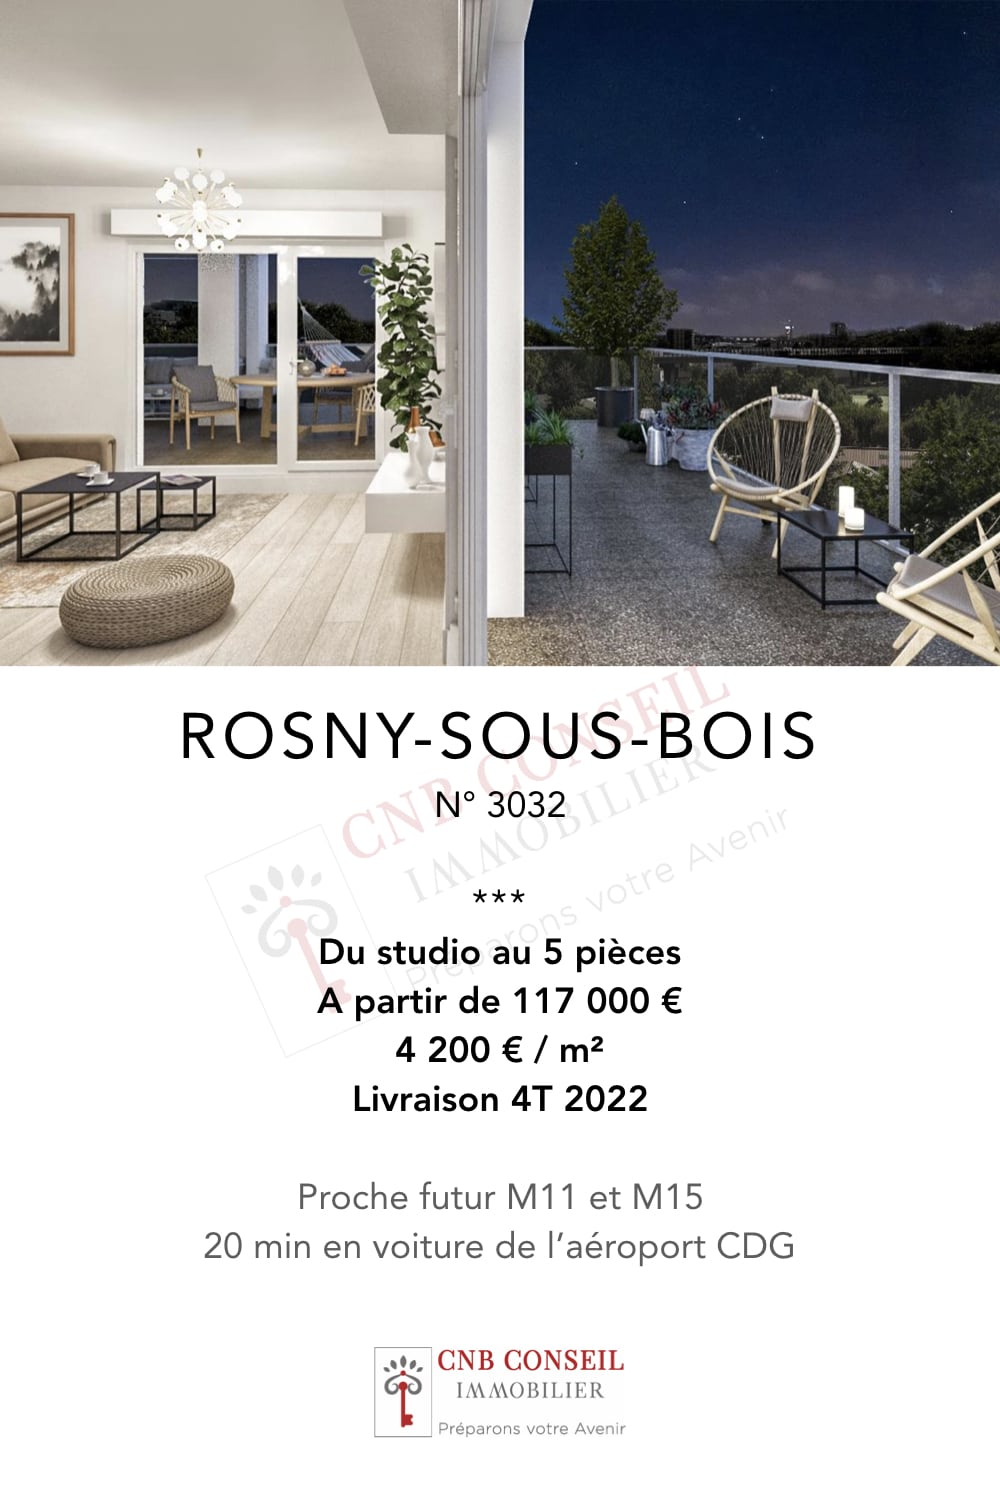 CNB-Conseil-Achat-Immobilier-Neuf-Acheter-Rosny-sous-Bois